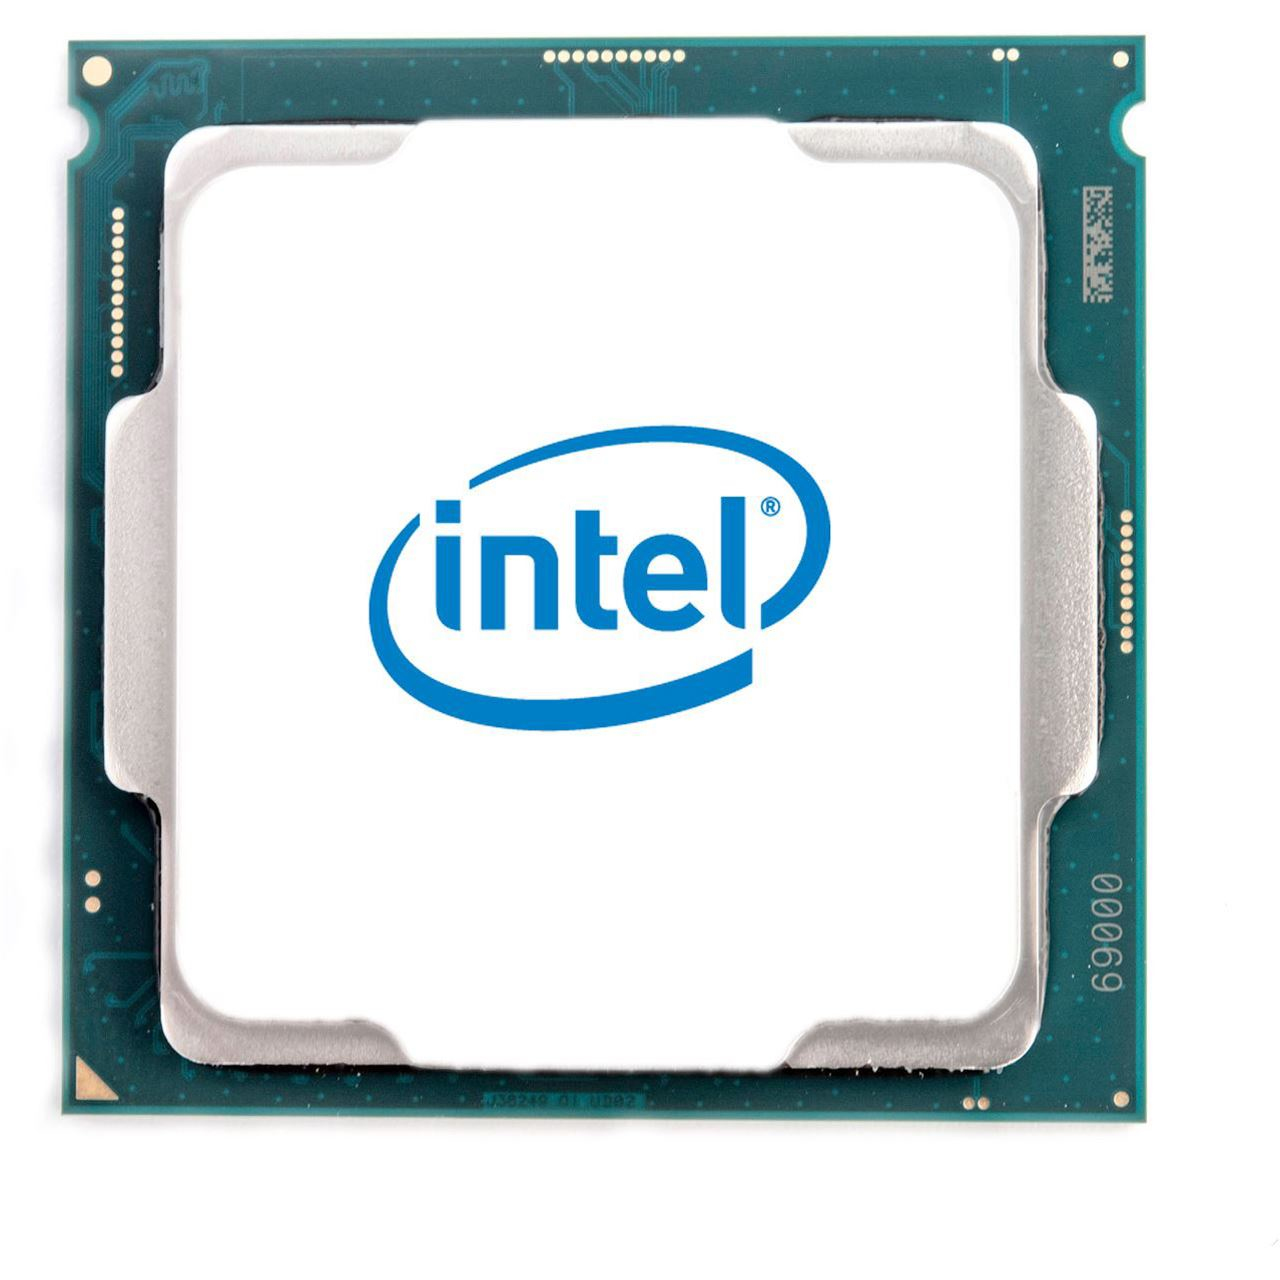 INTEL CM8068403358811 CORE I5-8400 PROCESSOR (9M CACHE, UP TO 4.00 GHZ) 2.80GHZ 9MB SMART CACHE (TRAY ONLY PROCESSOR)